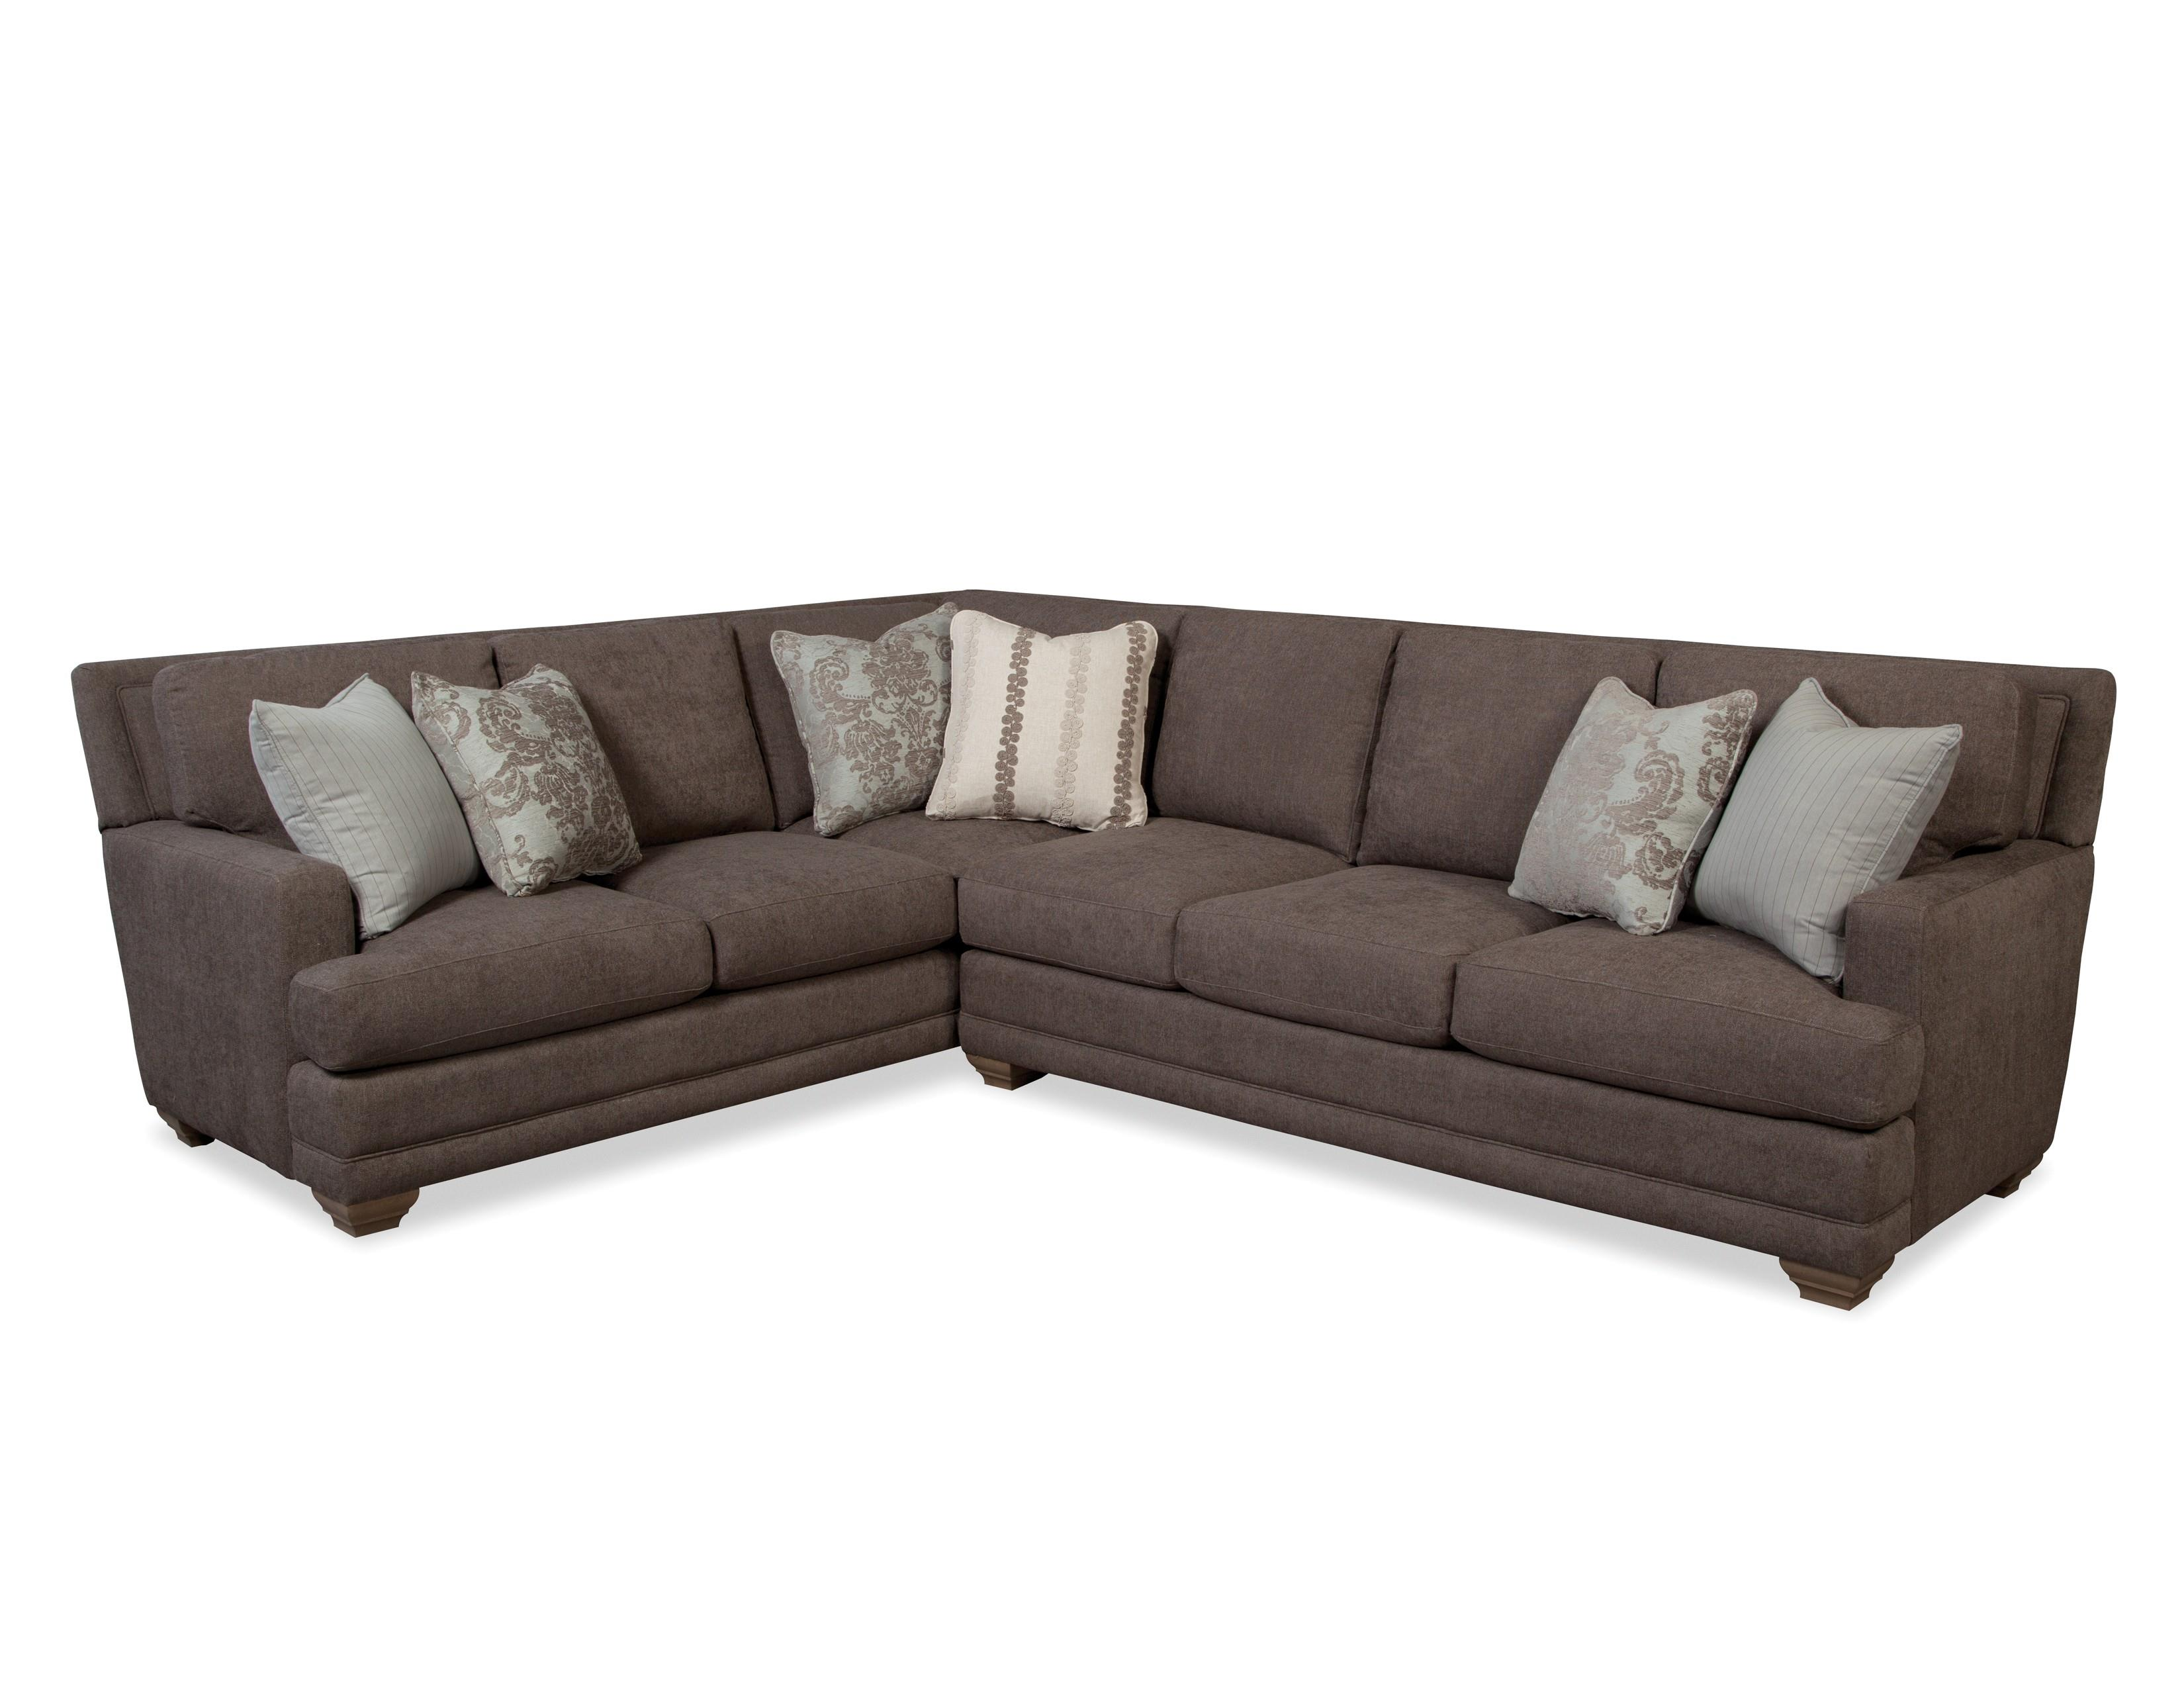 Traditional Sectional Sofa with Toss Pillows by Craftmaster